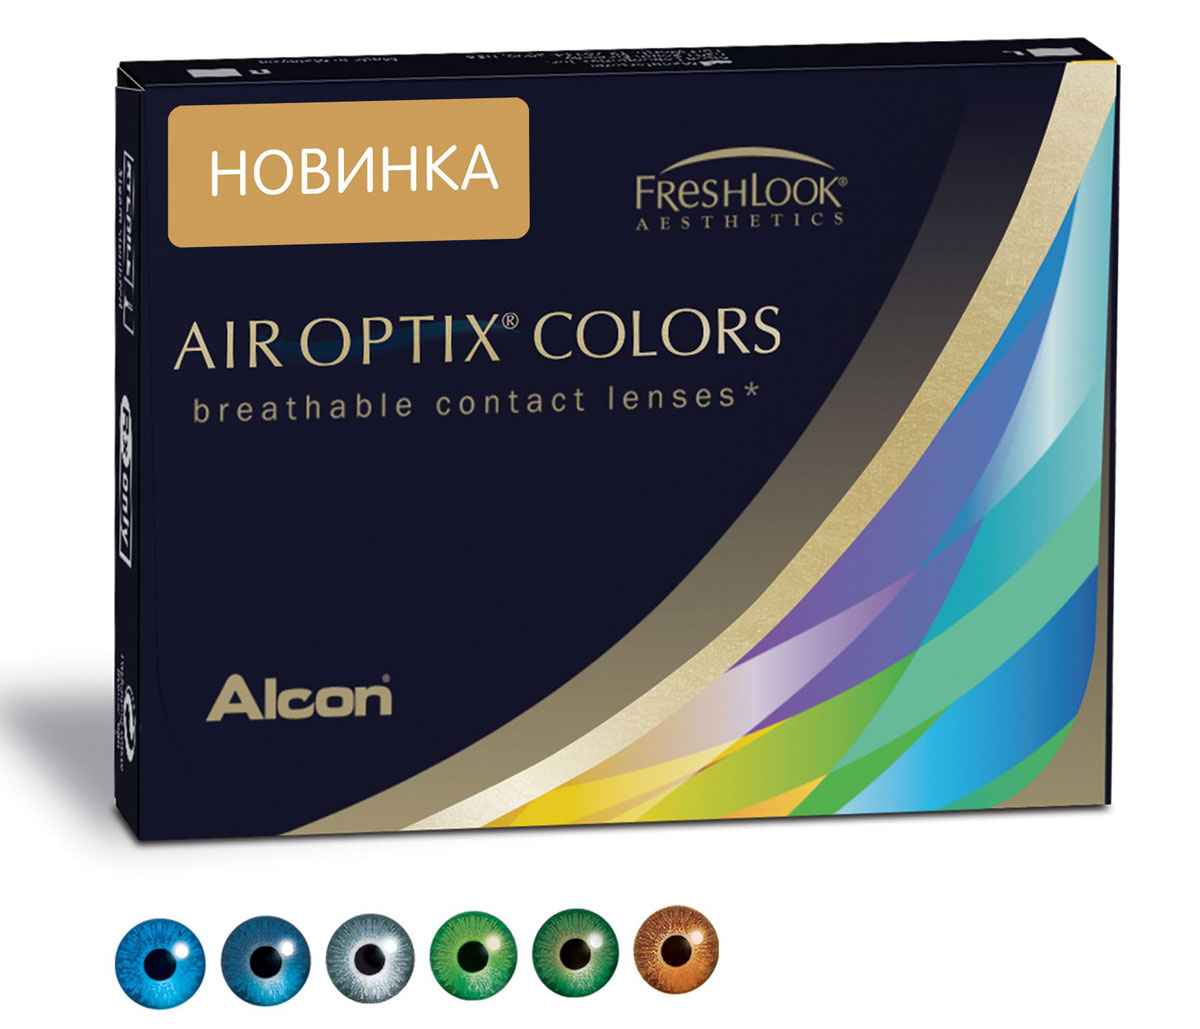 Аlcon контактные линзы Air Optix Colors 2 шт -3.00 Green